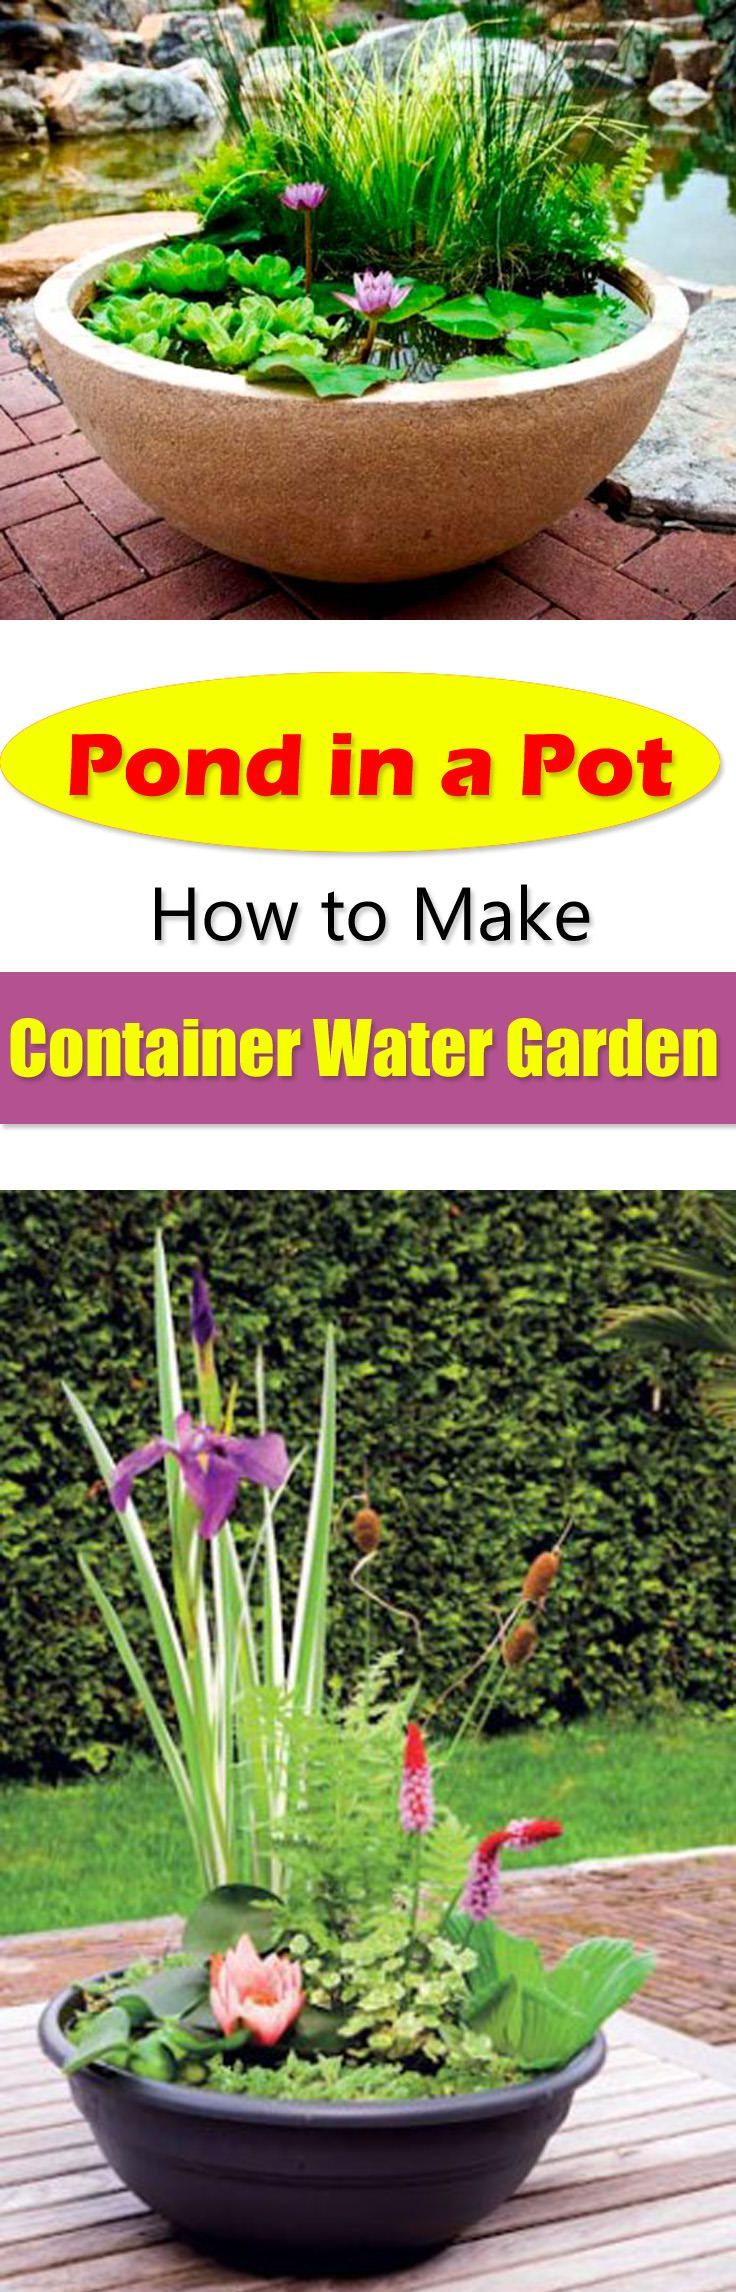 25 best ideas about water pond on pinterest water pond for Pond in a pot ideas